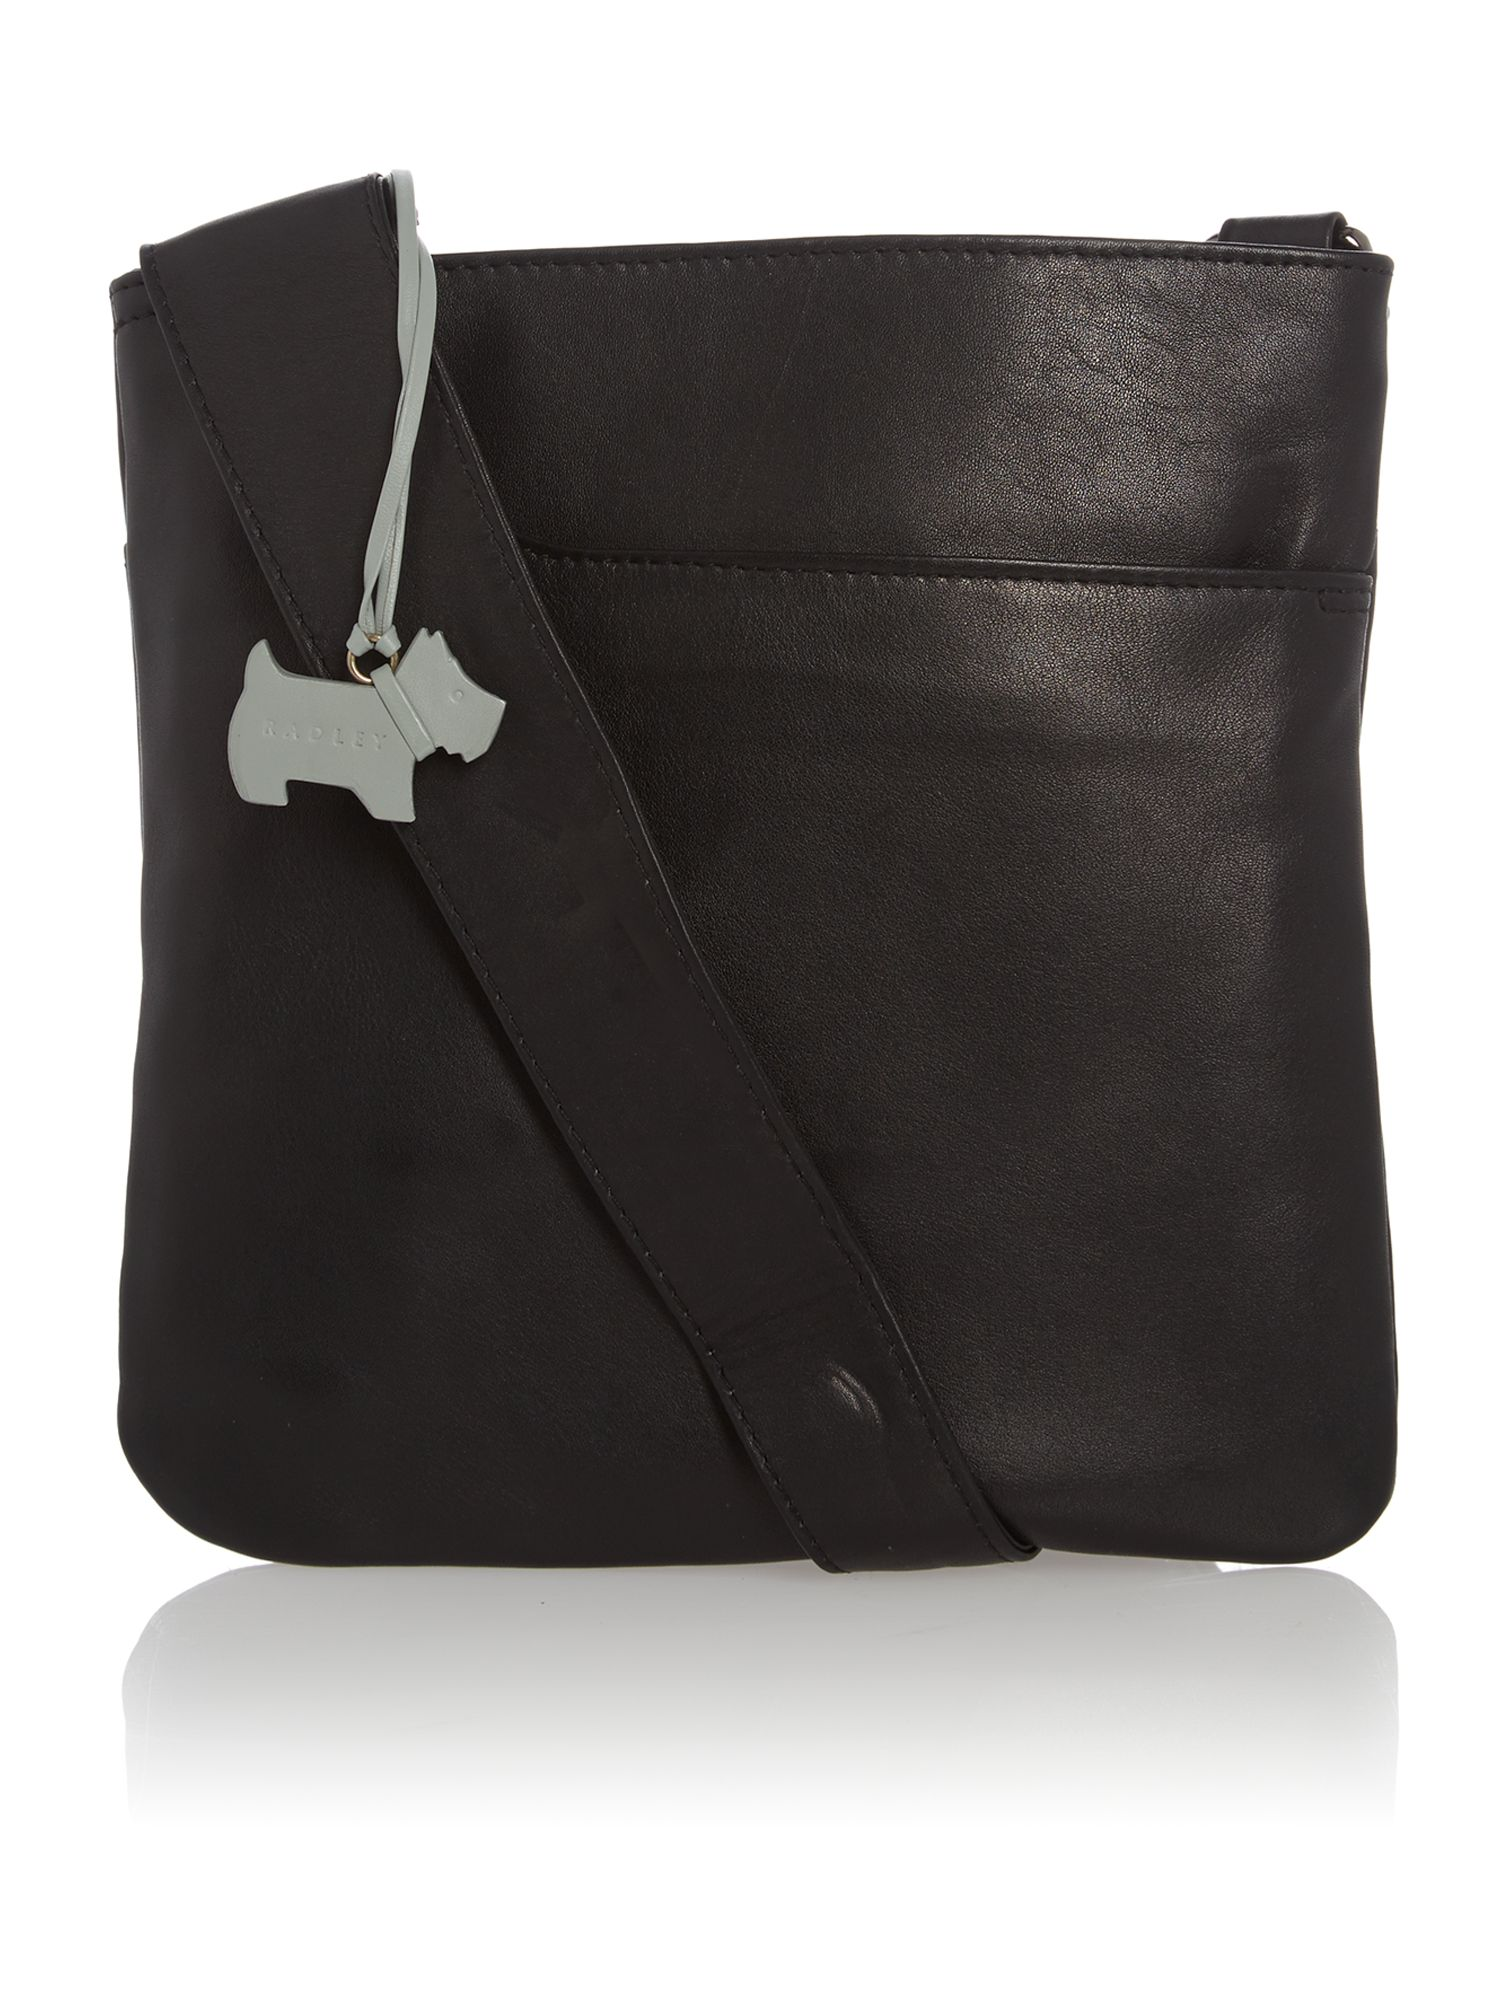 Small black cross body pocket bag